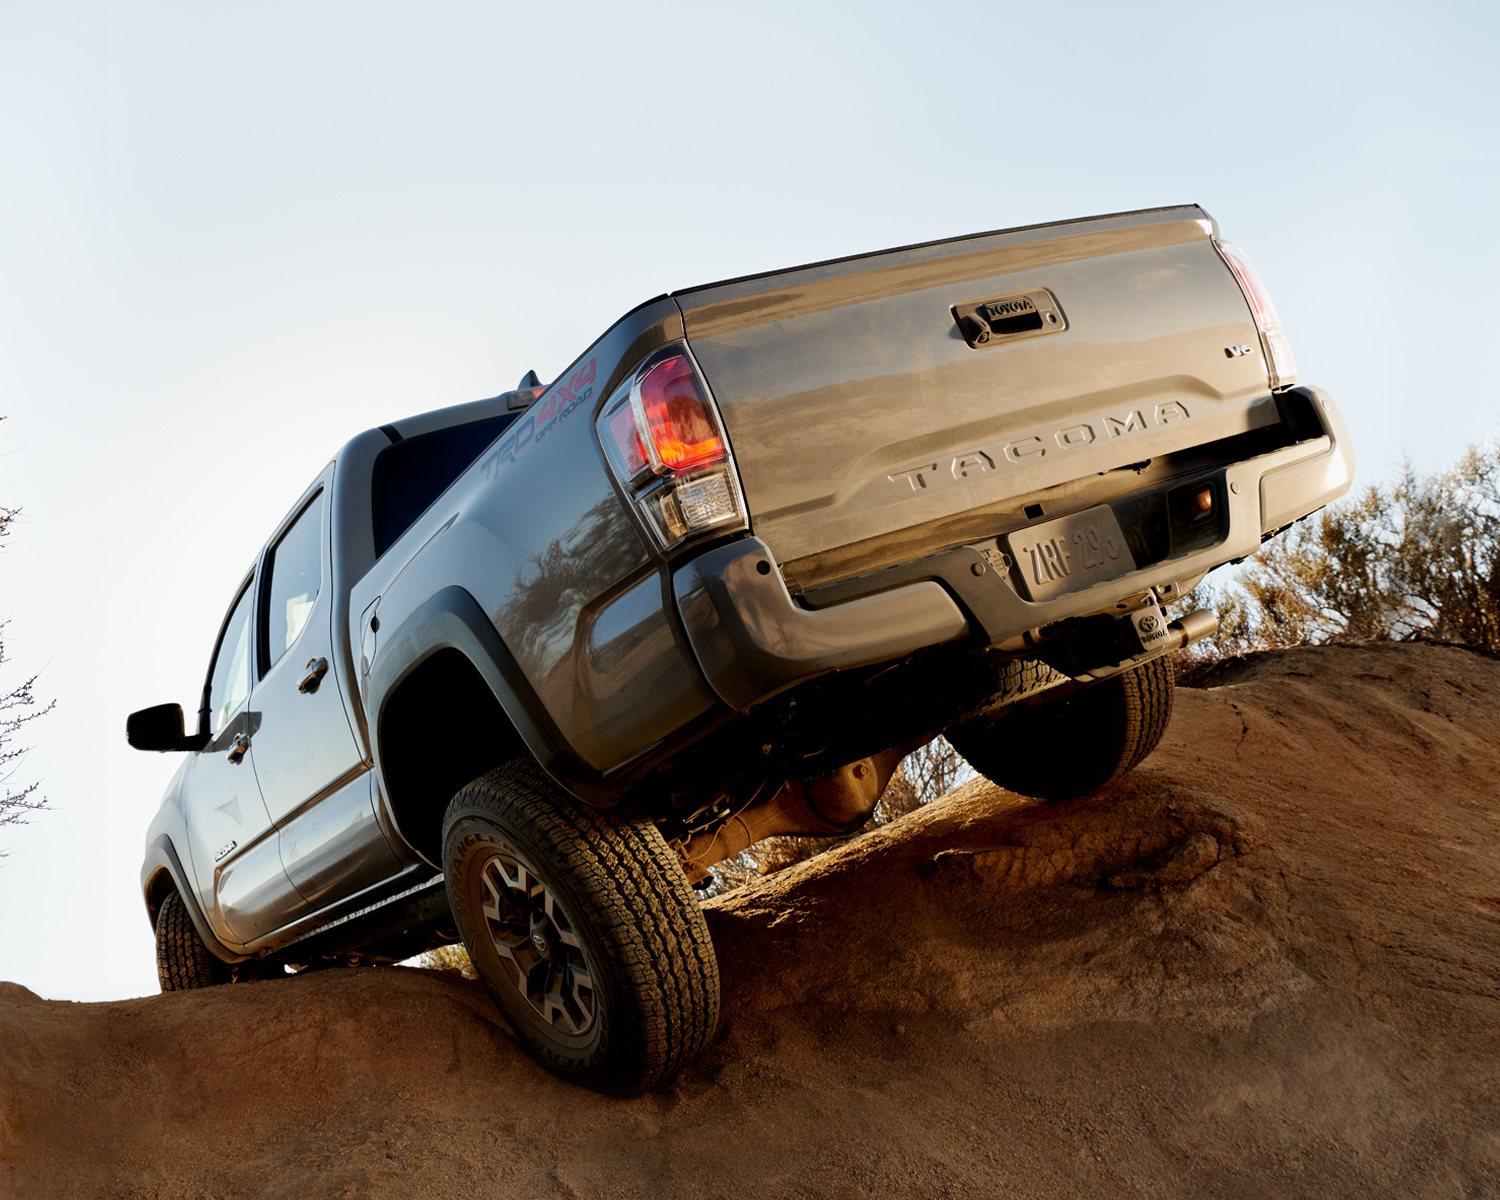 Tacoma Double Cab TRD Off Road shown in Cement